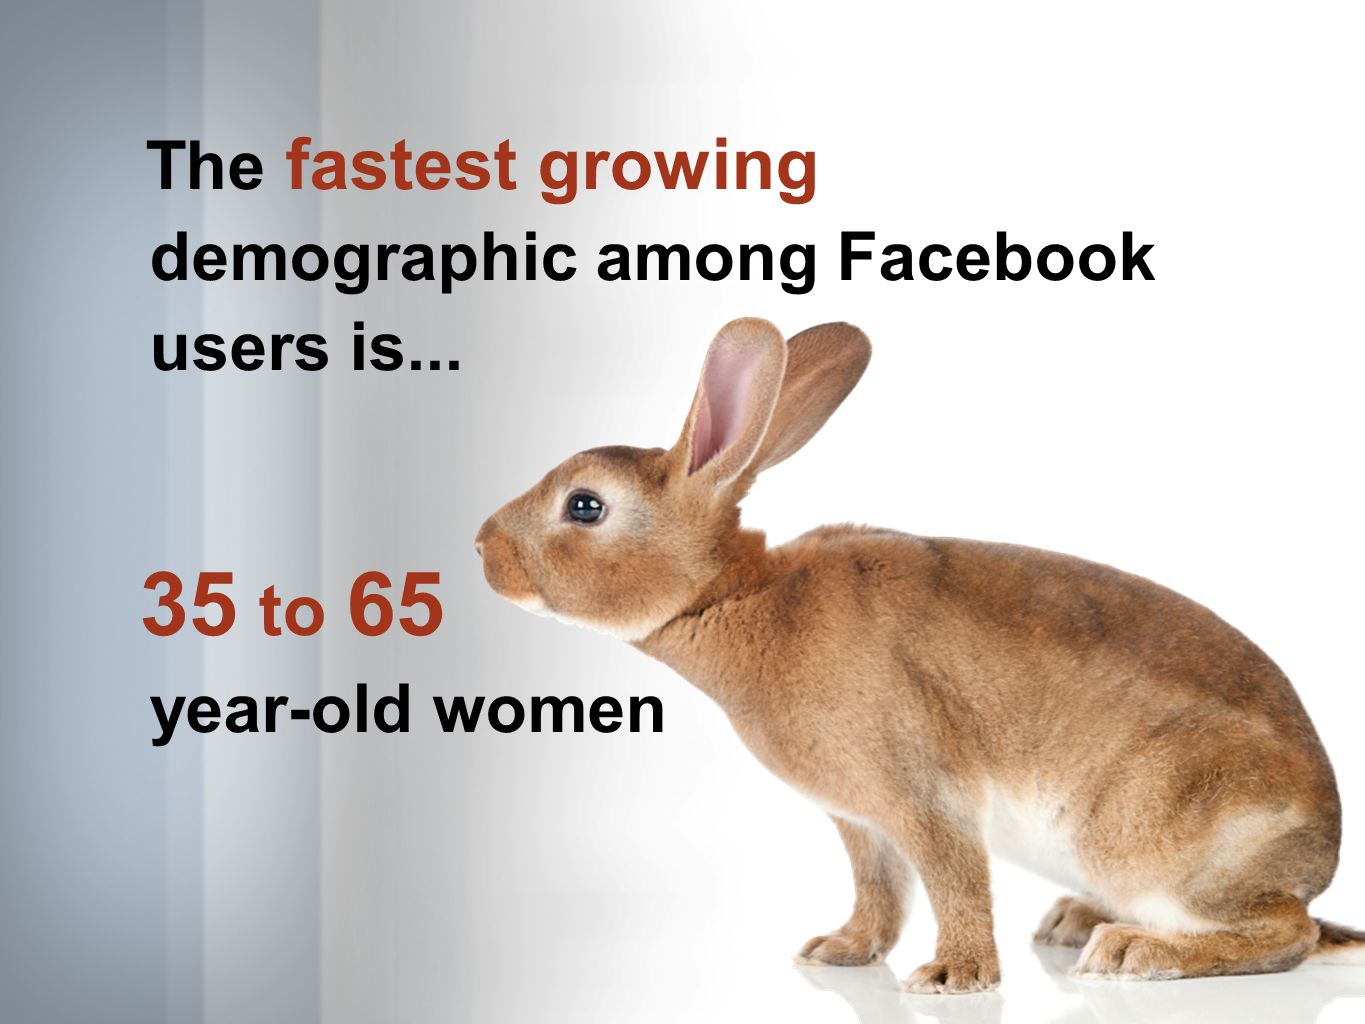 The fastest growing demographic among Facebook users is... 35 to 65 year-old women